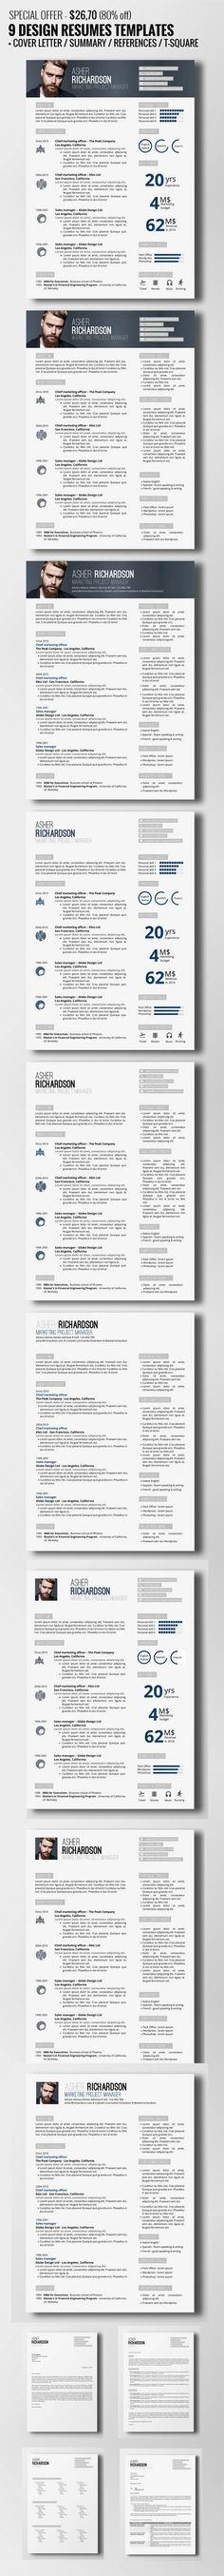 435 best Resume images on Pinterest Resume design, Design resume - web developer resumes